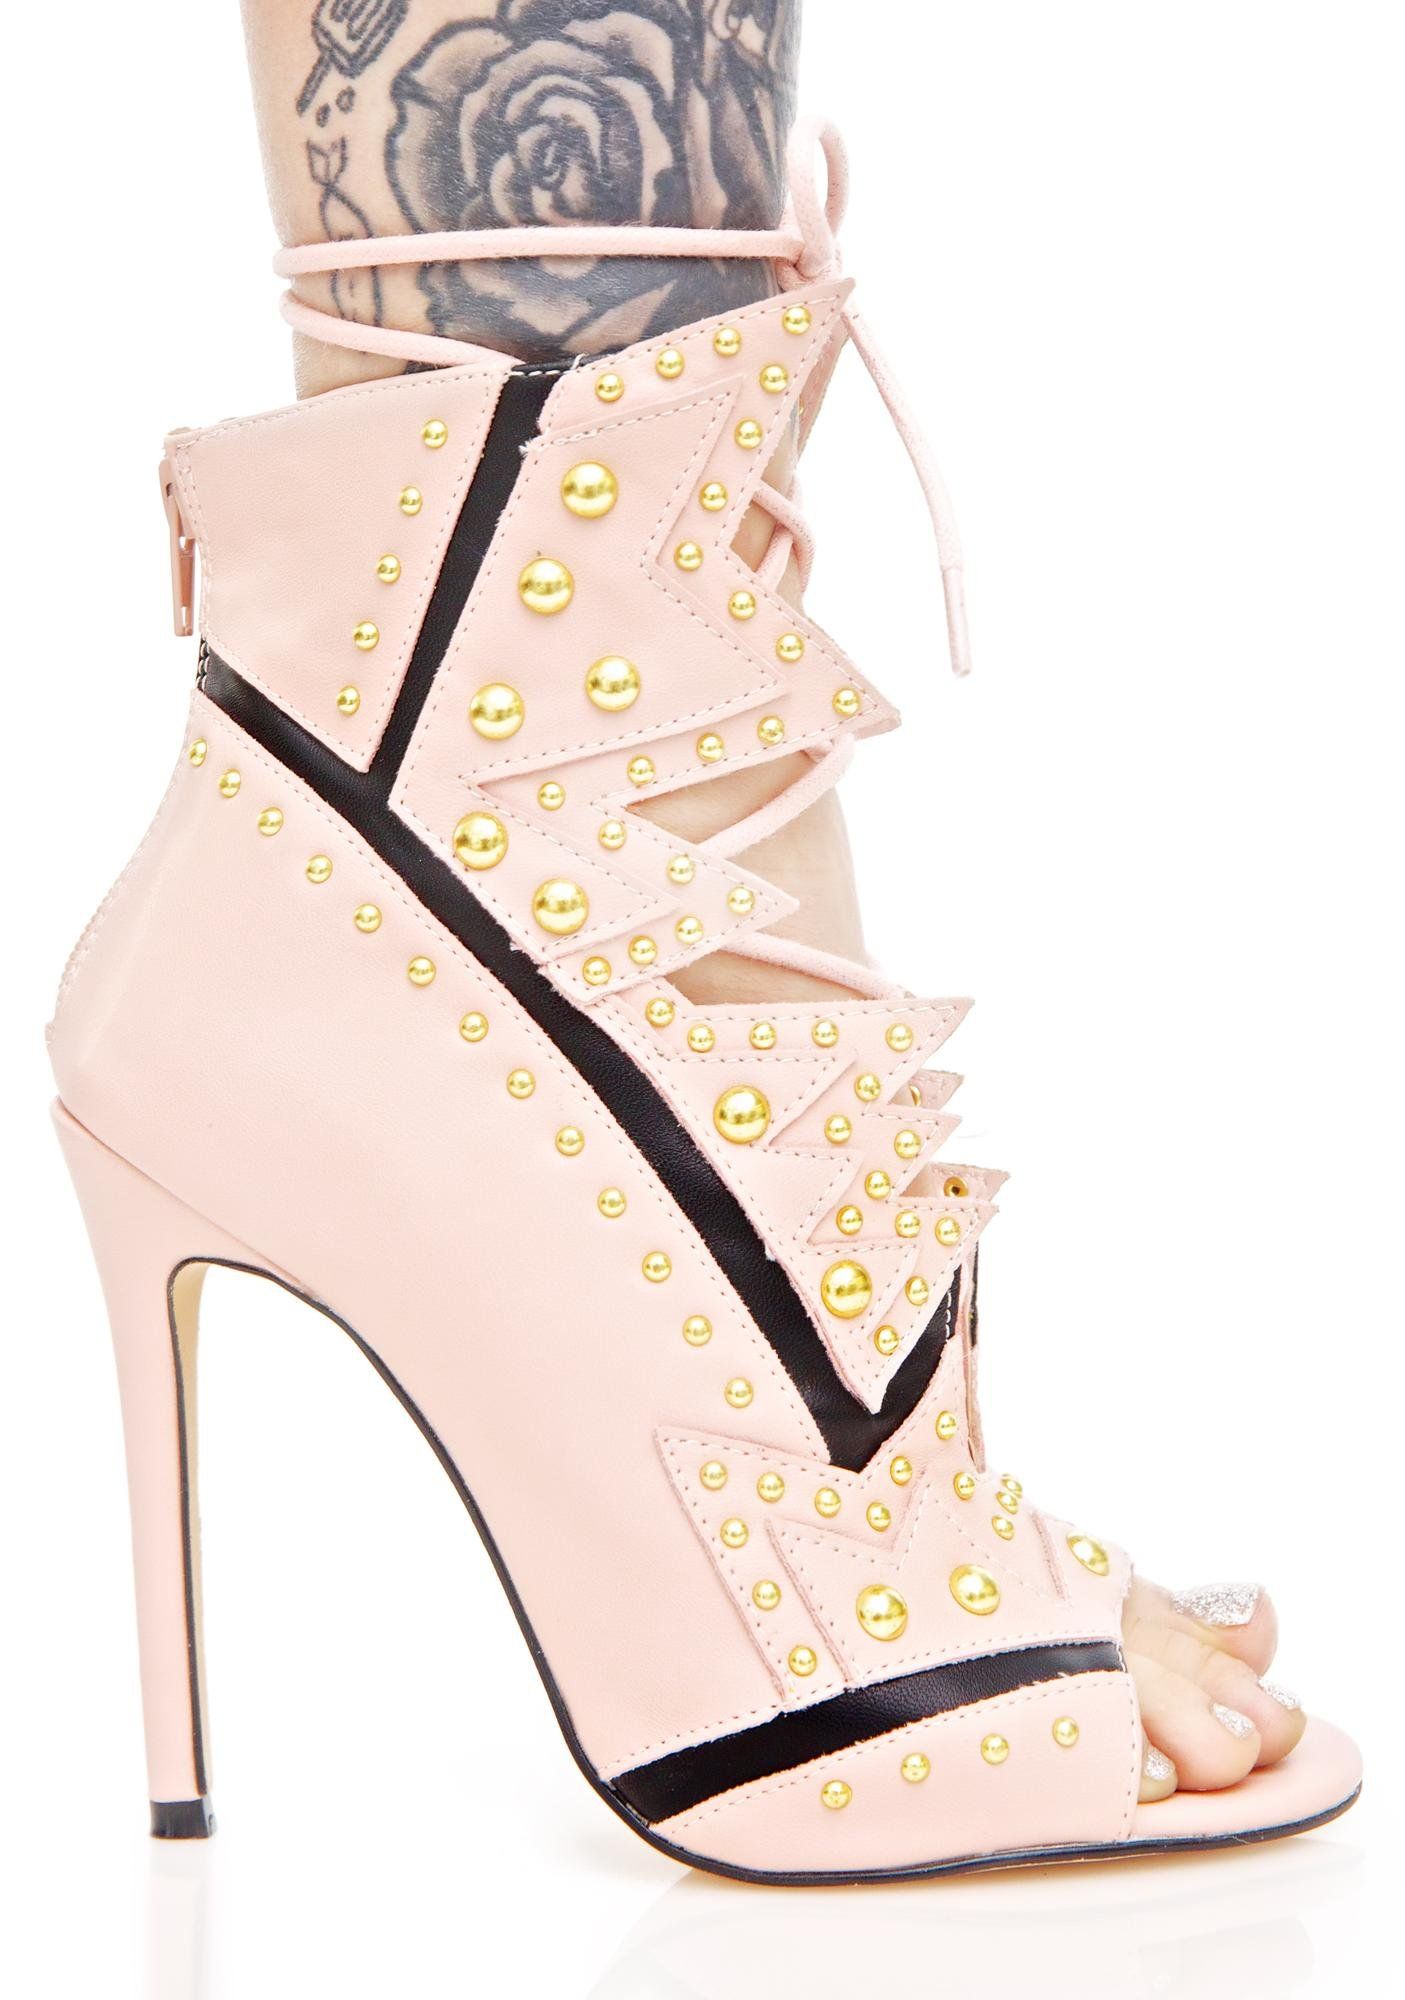 Privileged Bang Bang Cut-Out Heels